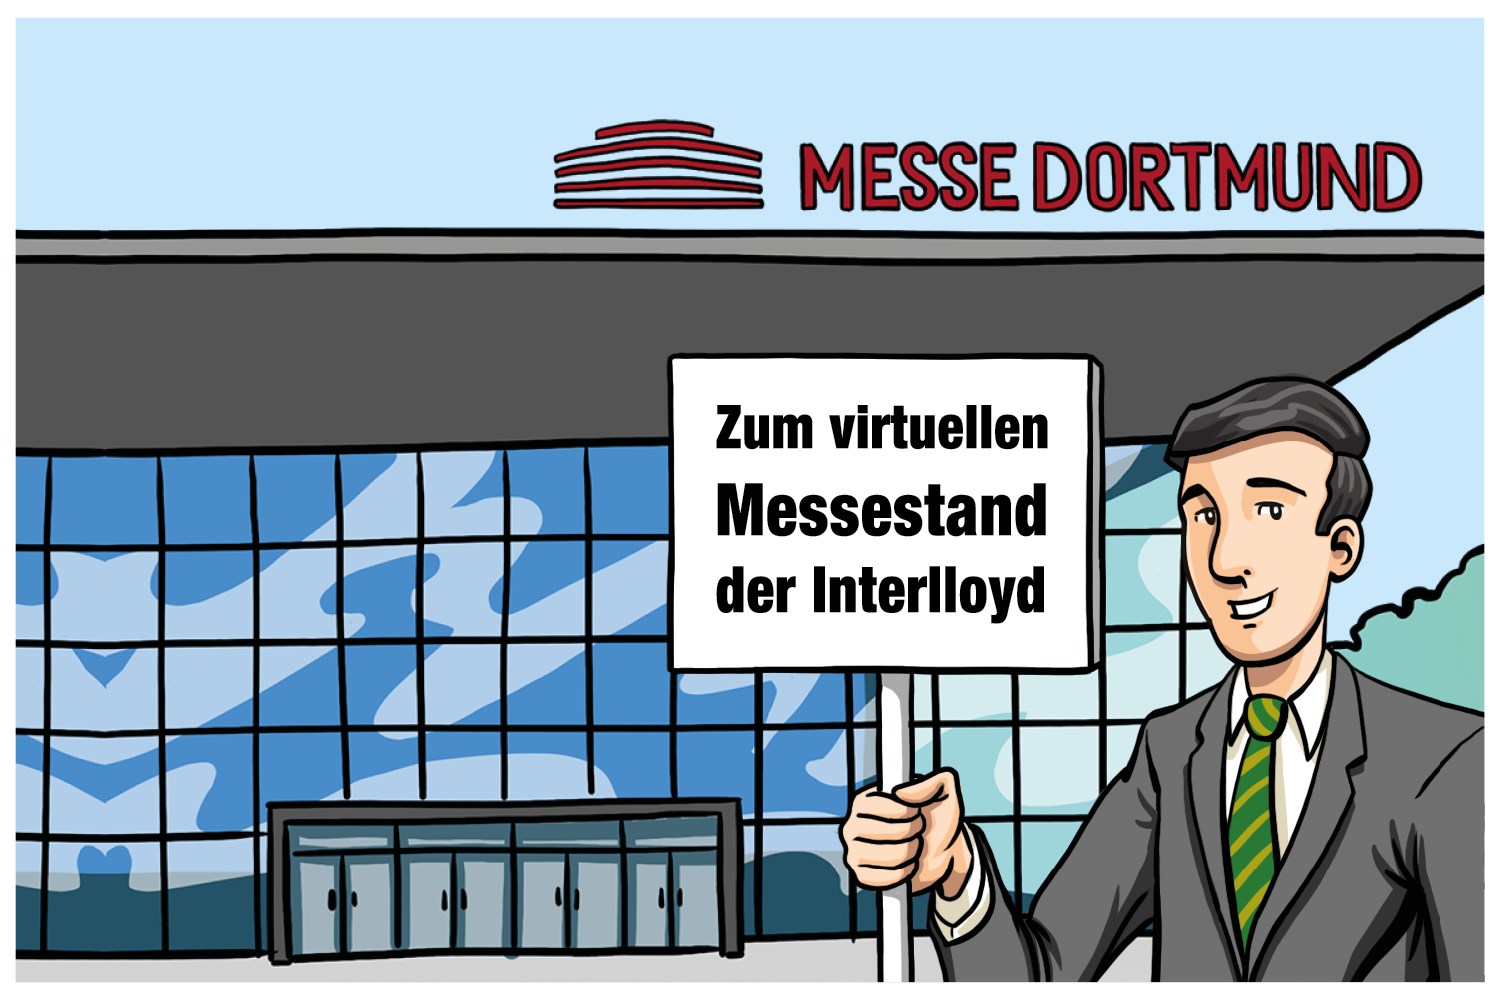 Zum_virtuellen_Messestand_der_Interlloyd